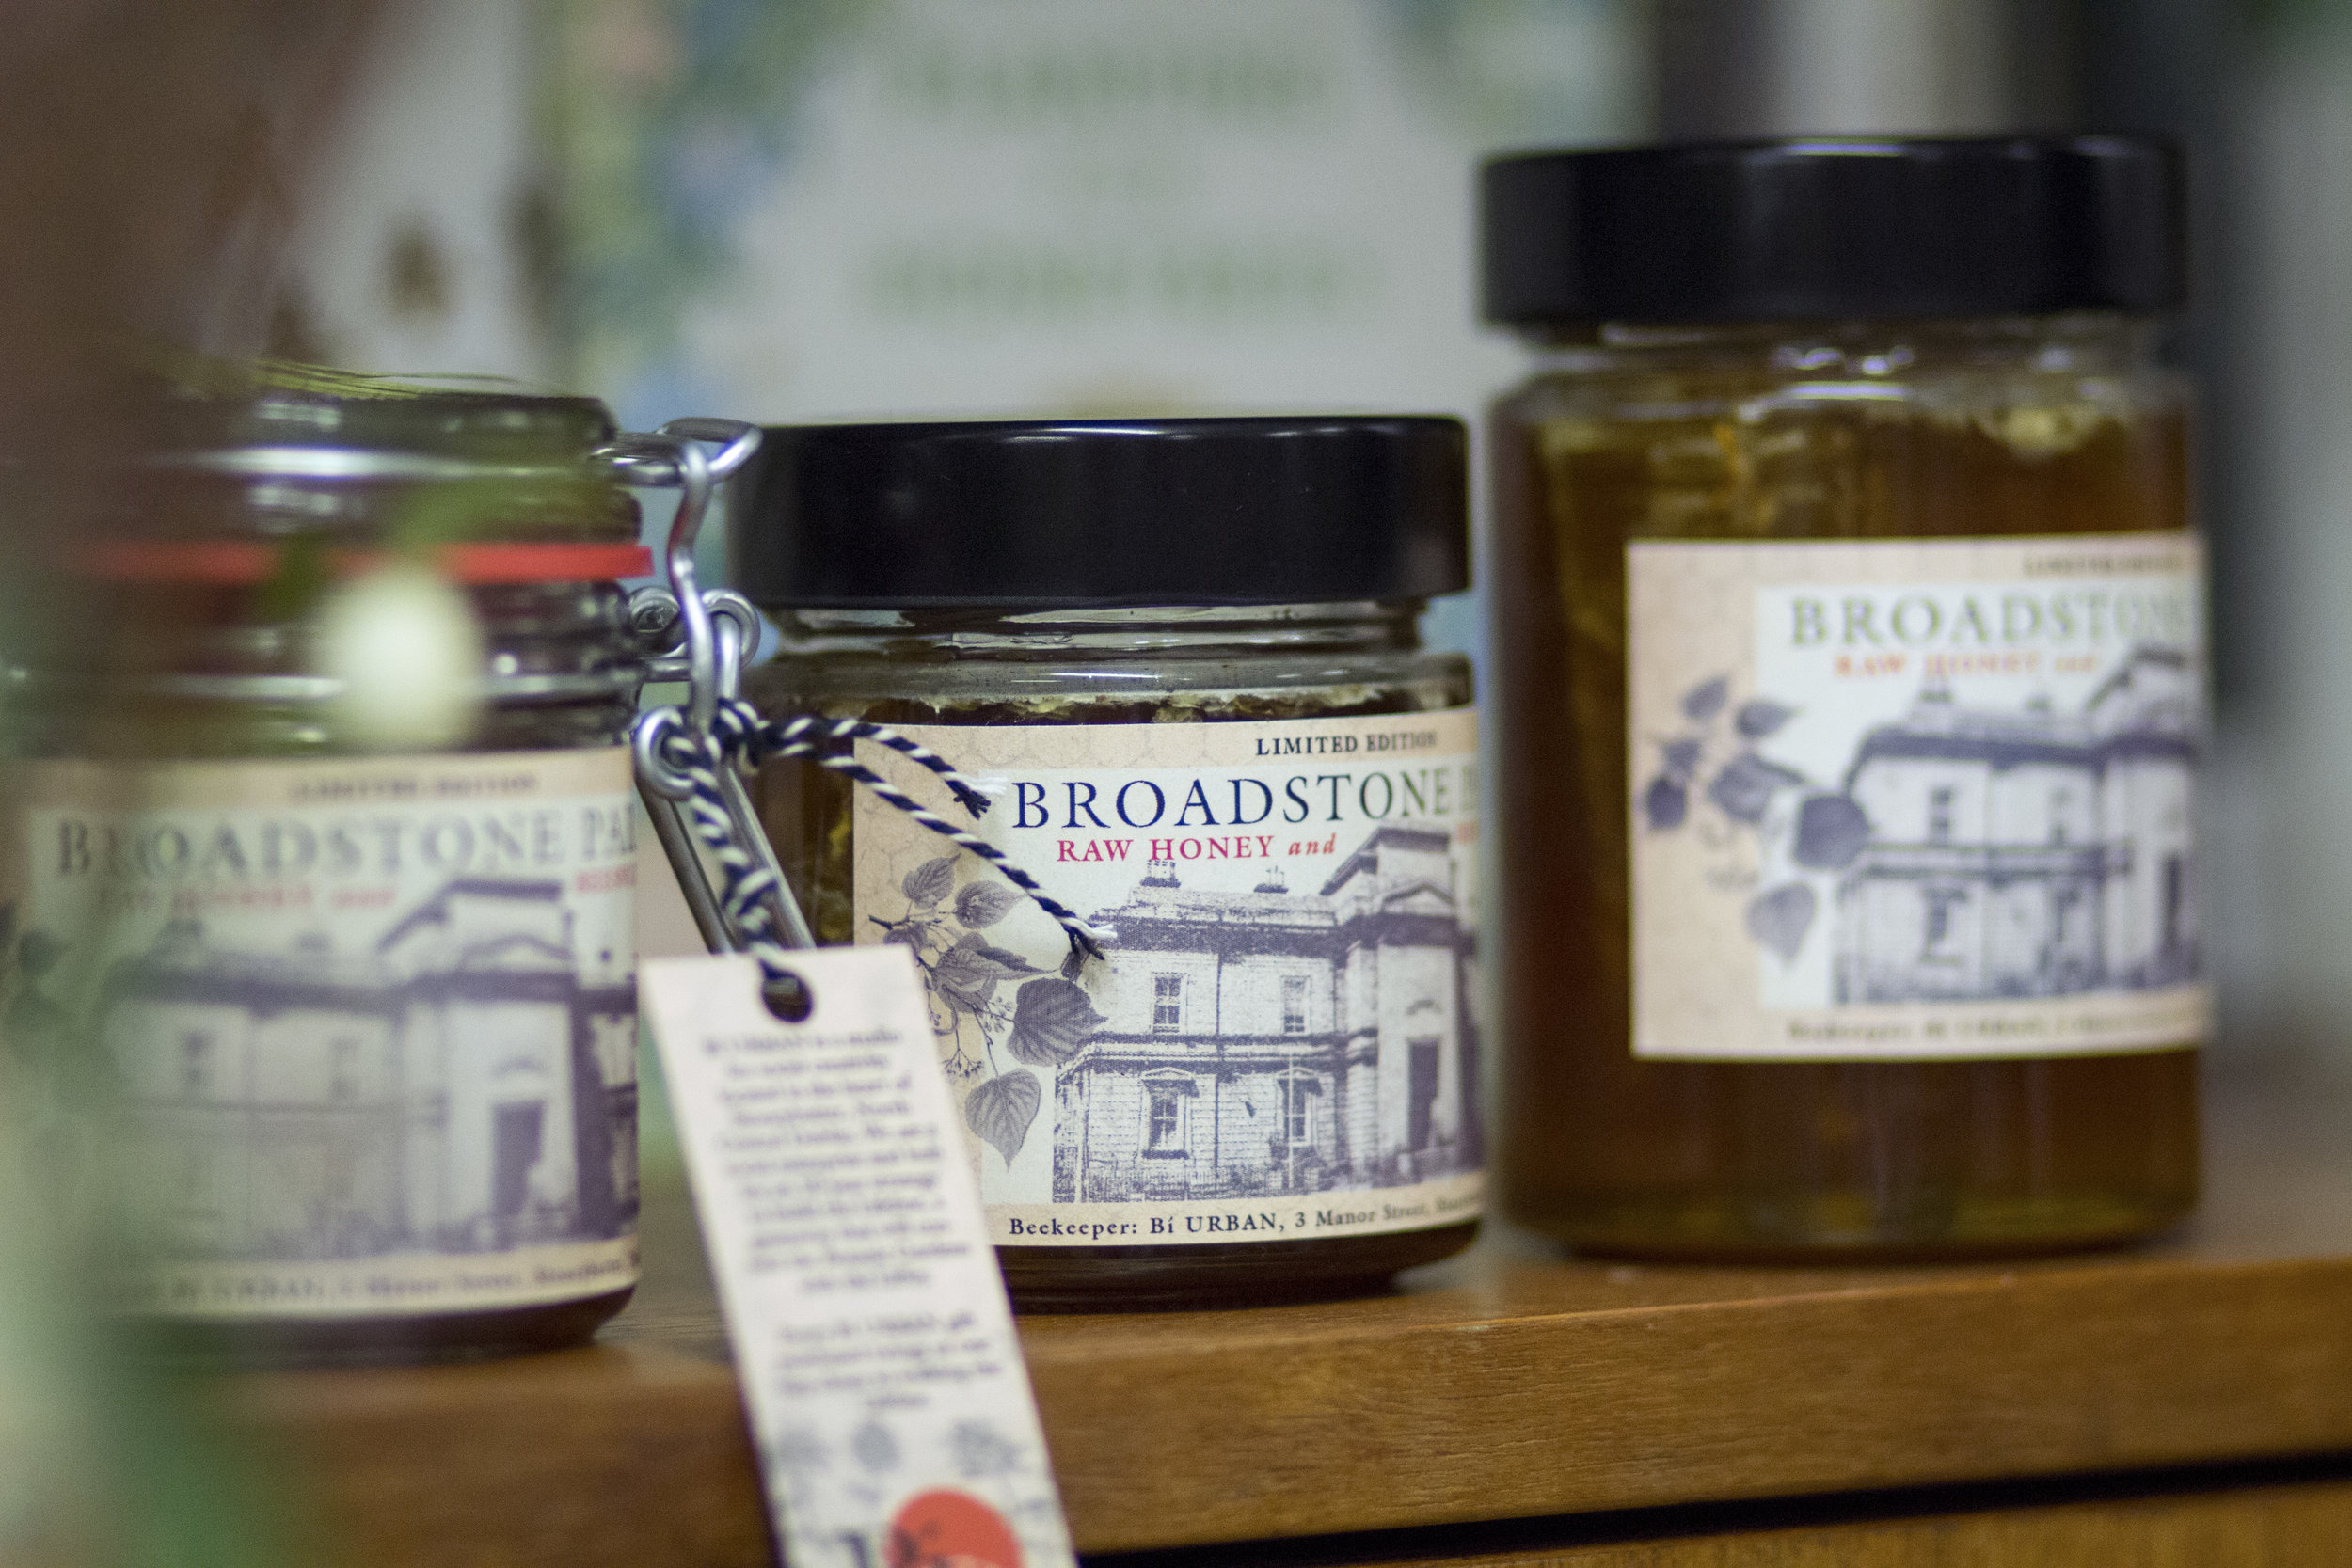 Bí URBAN'S BROADSTONE HONEY IS NEARLY HERE - Launching on October 17th 2019